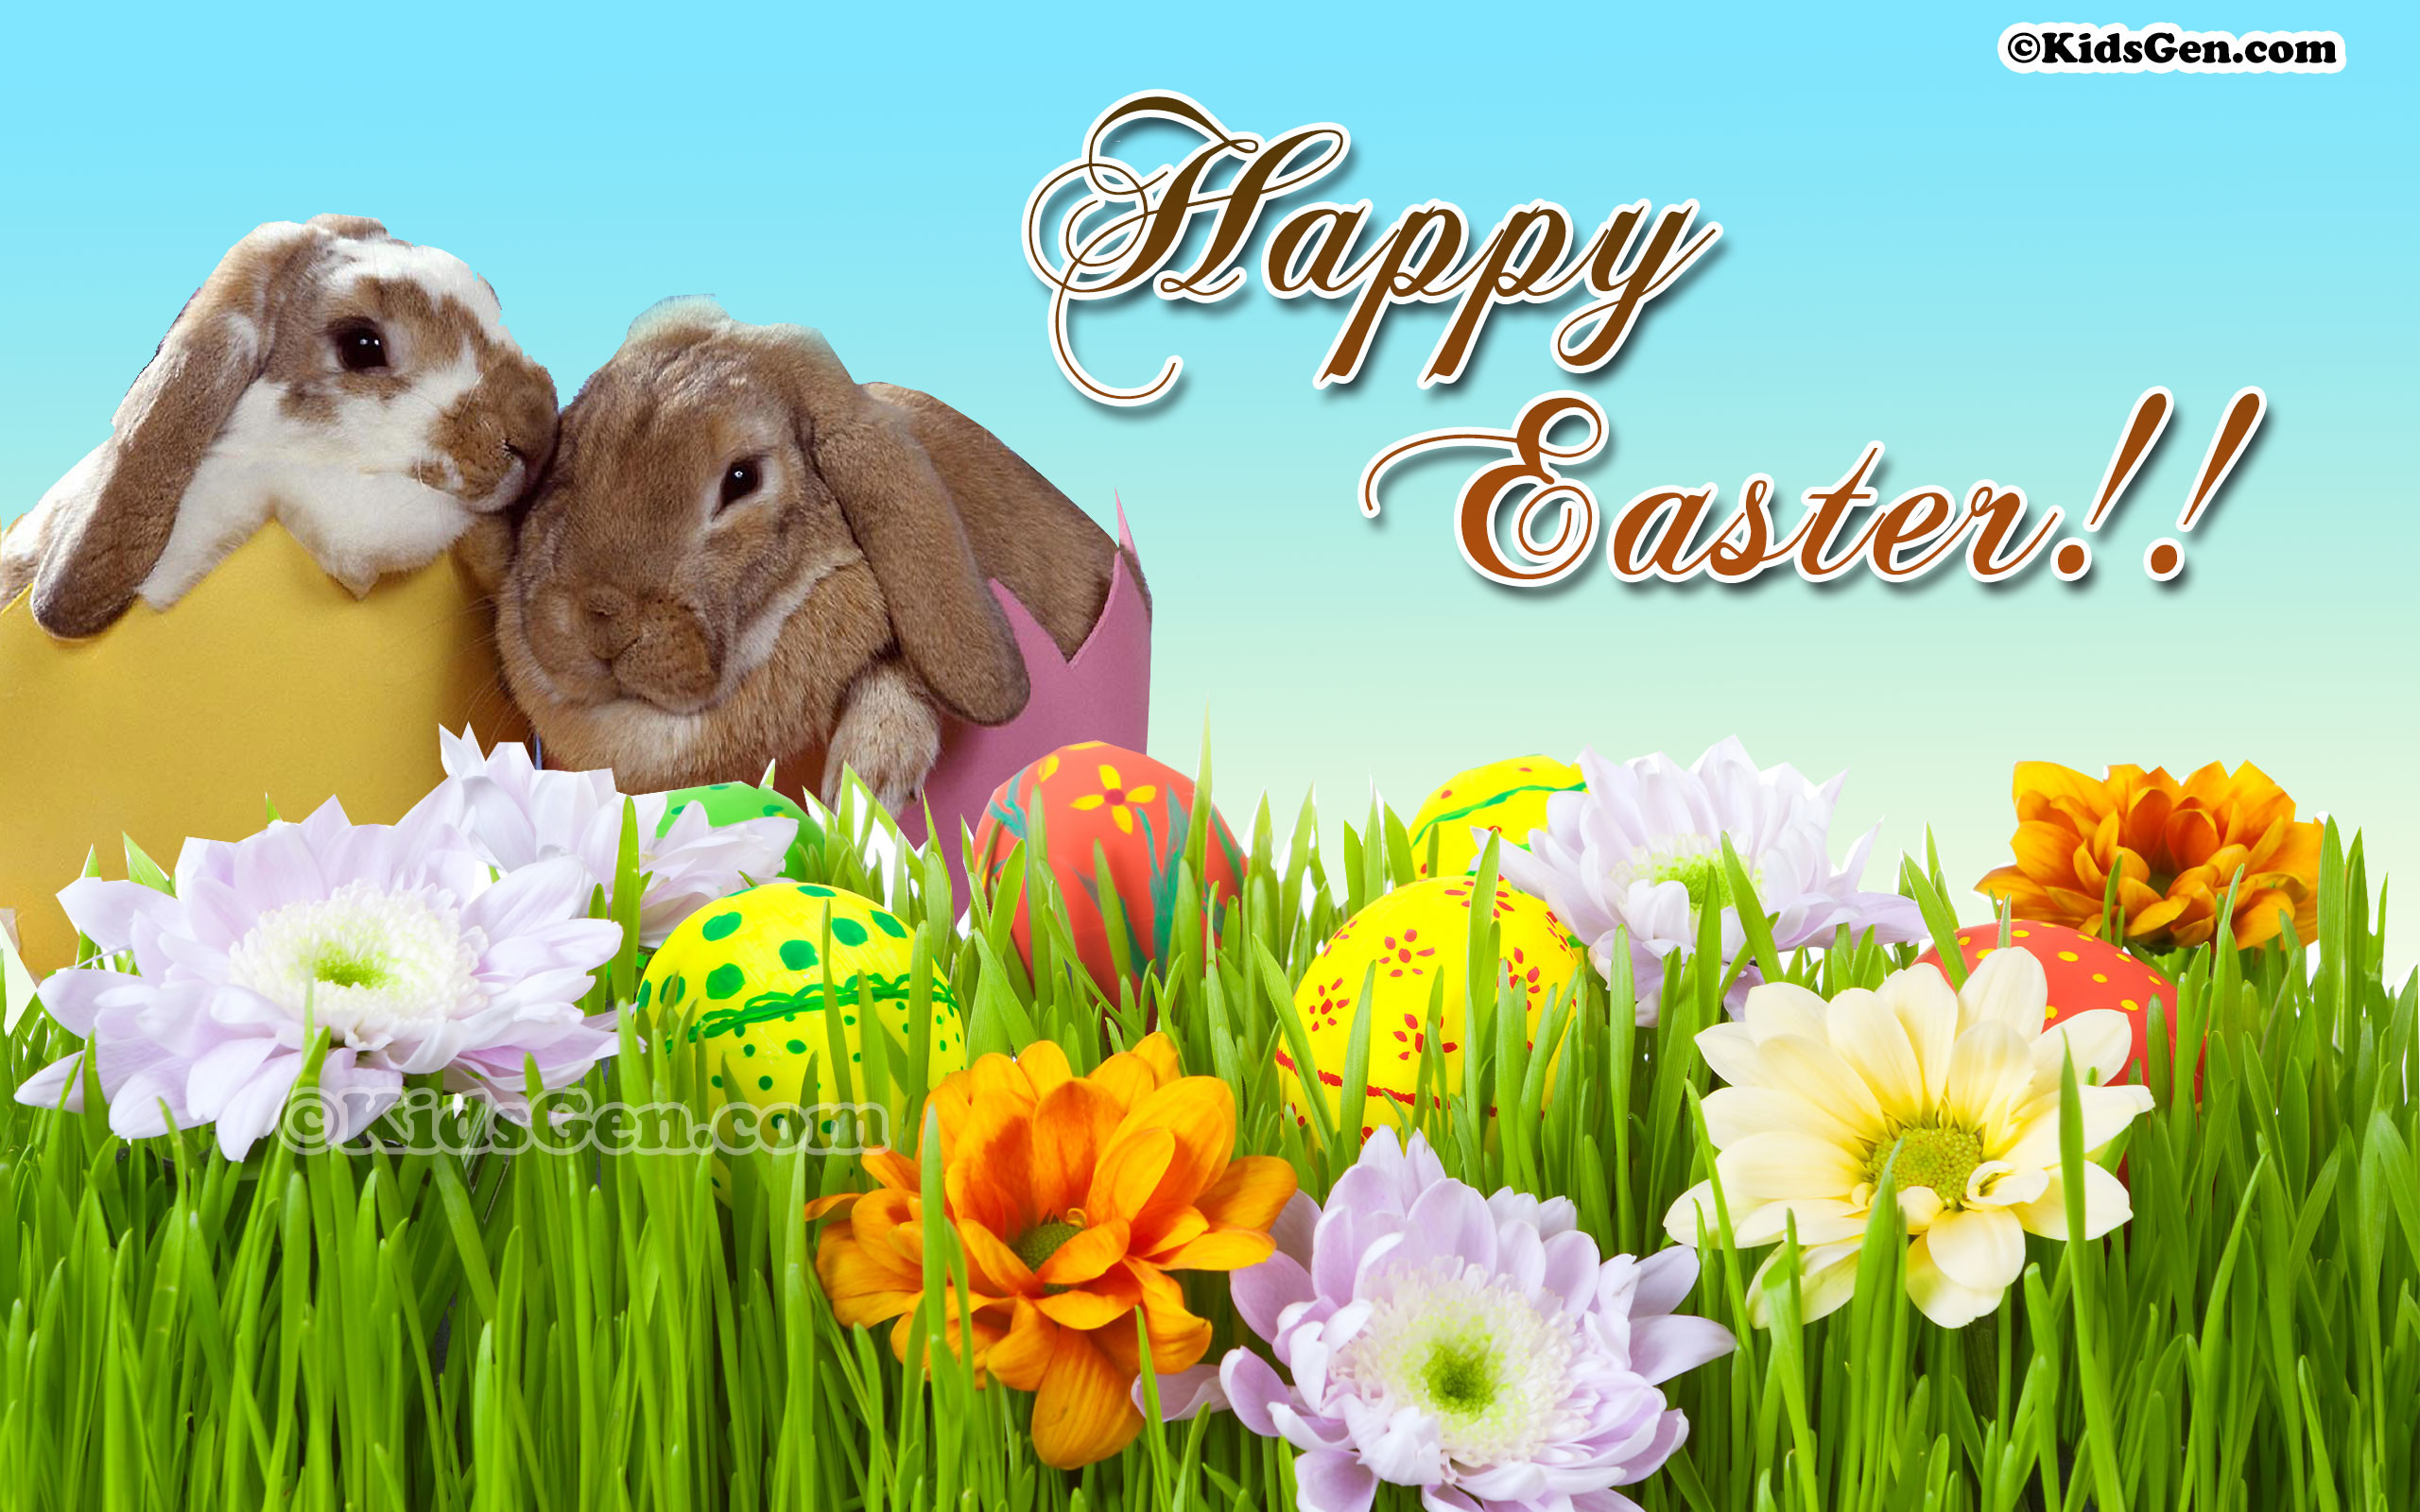 2560x1600 HD Wallpaper for kids with Happy Easter wishes